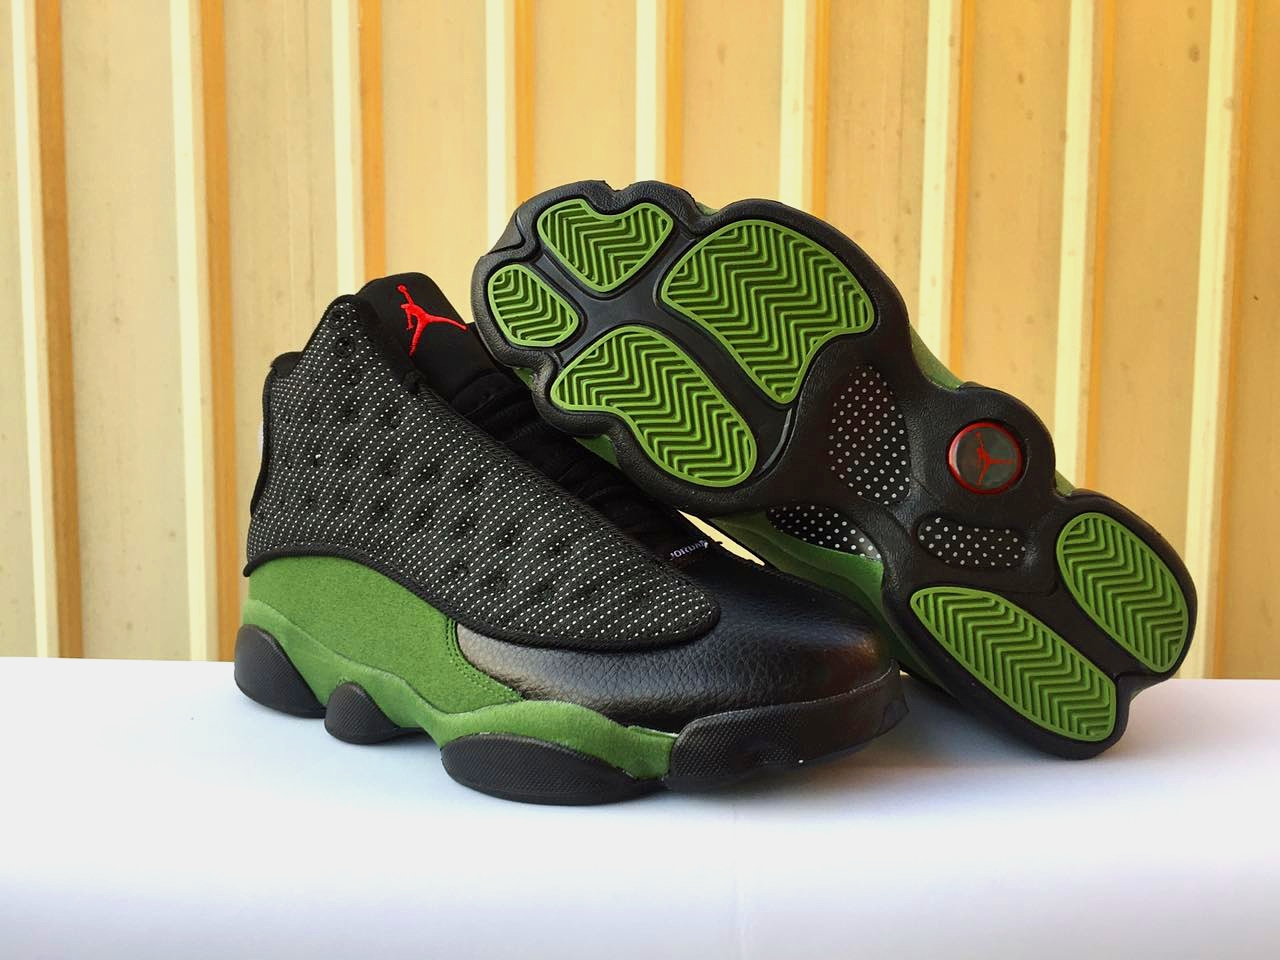 New Air Jordan 13 Black Olive Shoes